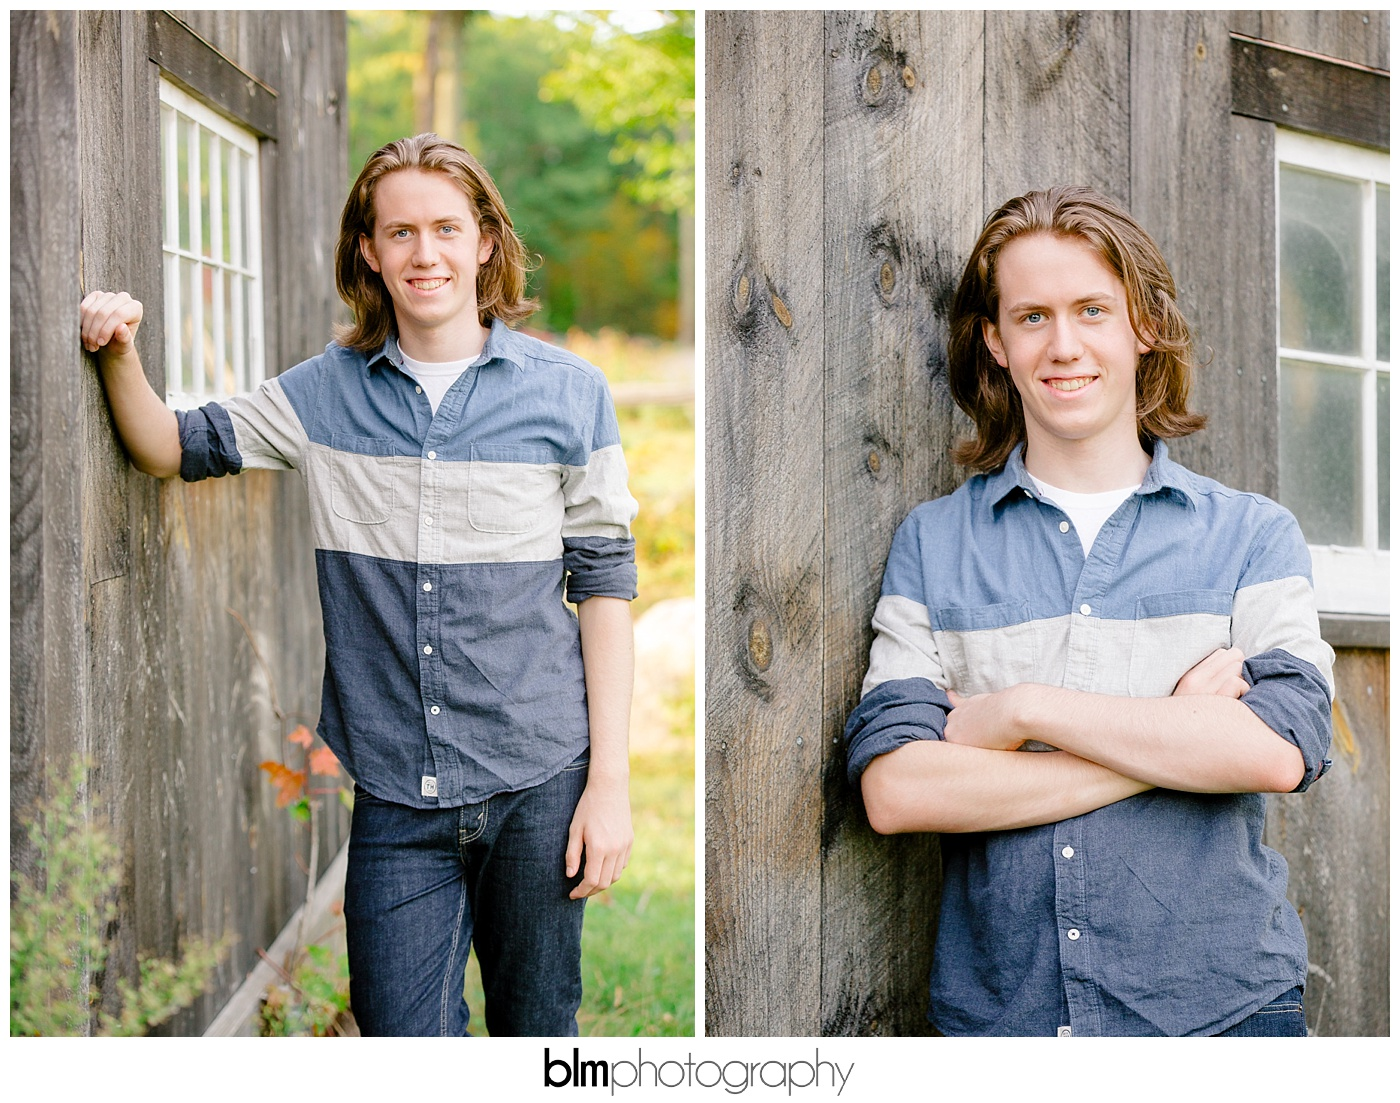 Ryan-Hoiriis_Senior-Portraits_092116-8421.jpg